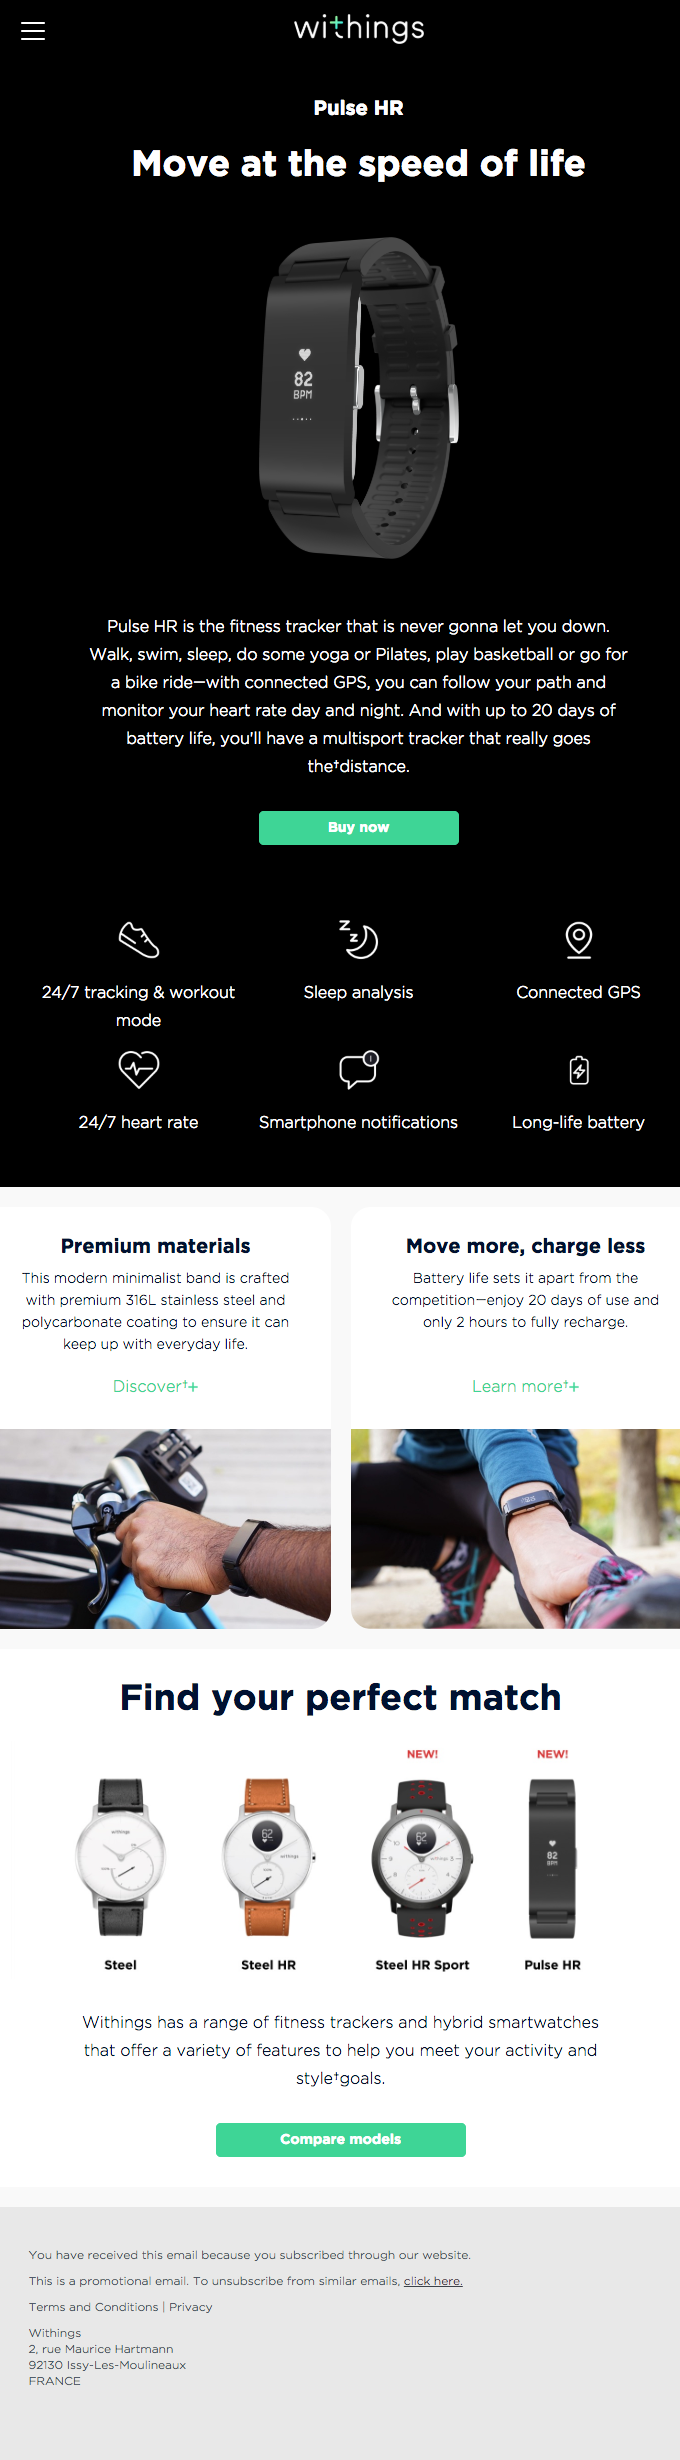 Meet Pulse HR, our newest multisport tracker